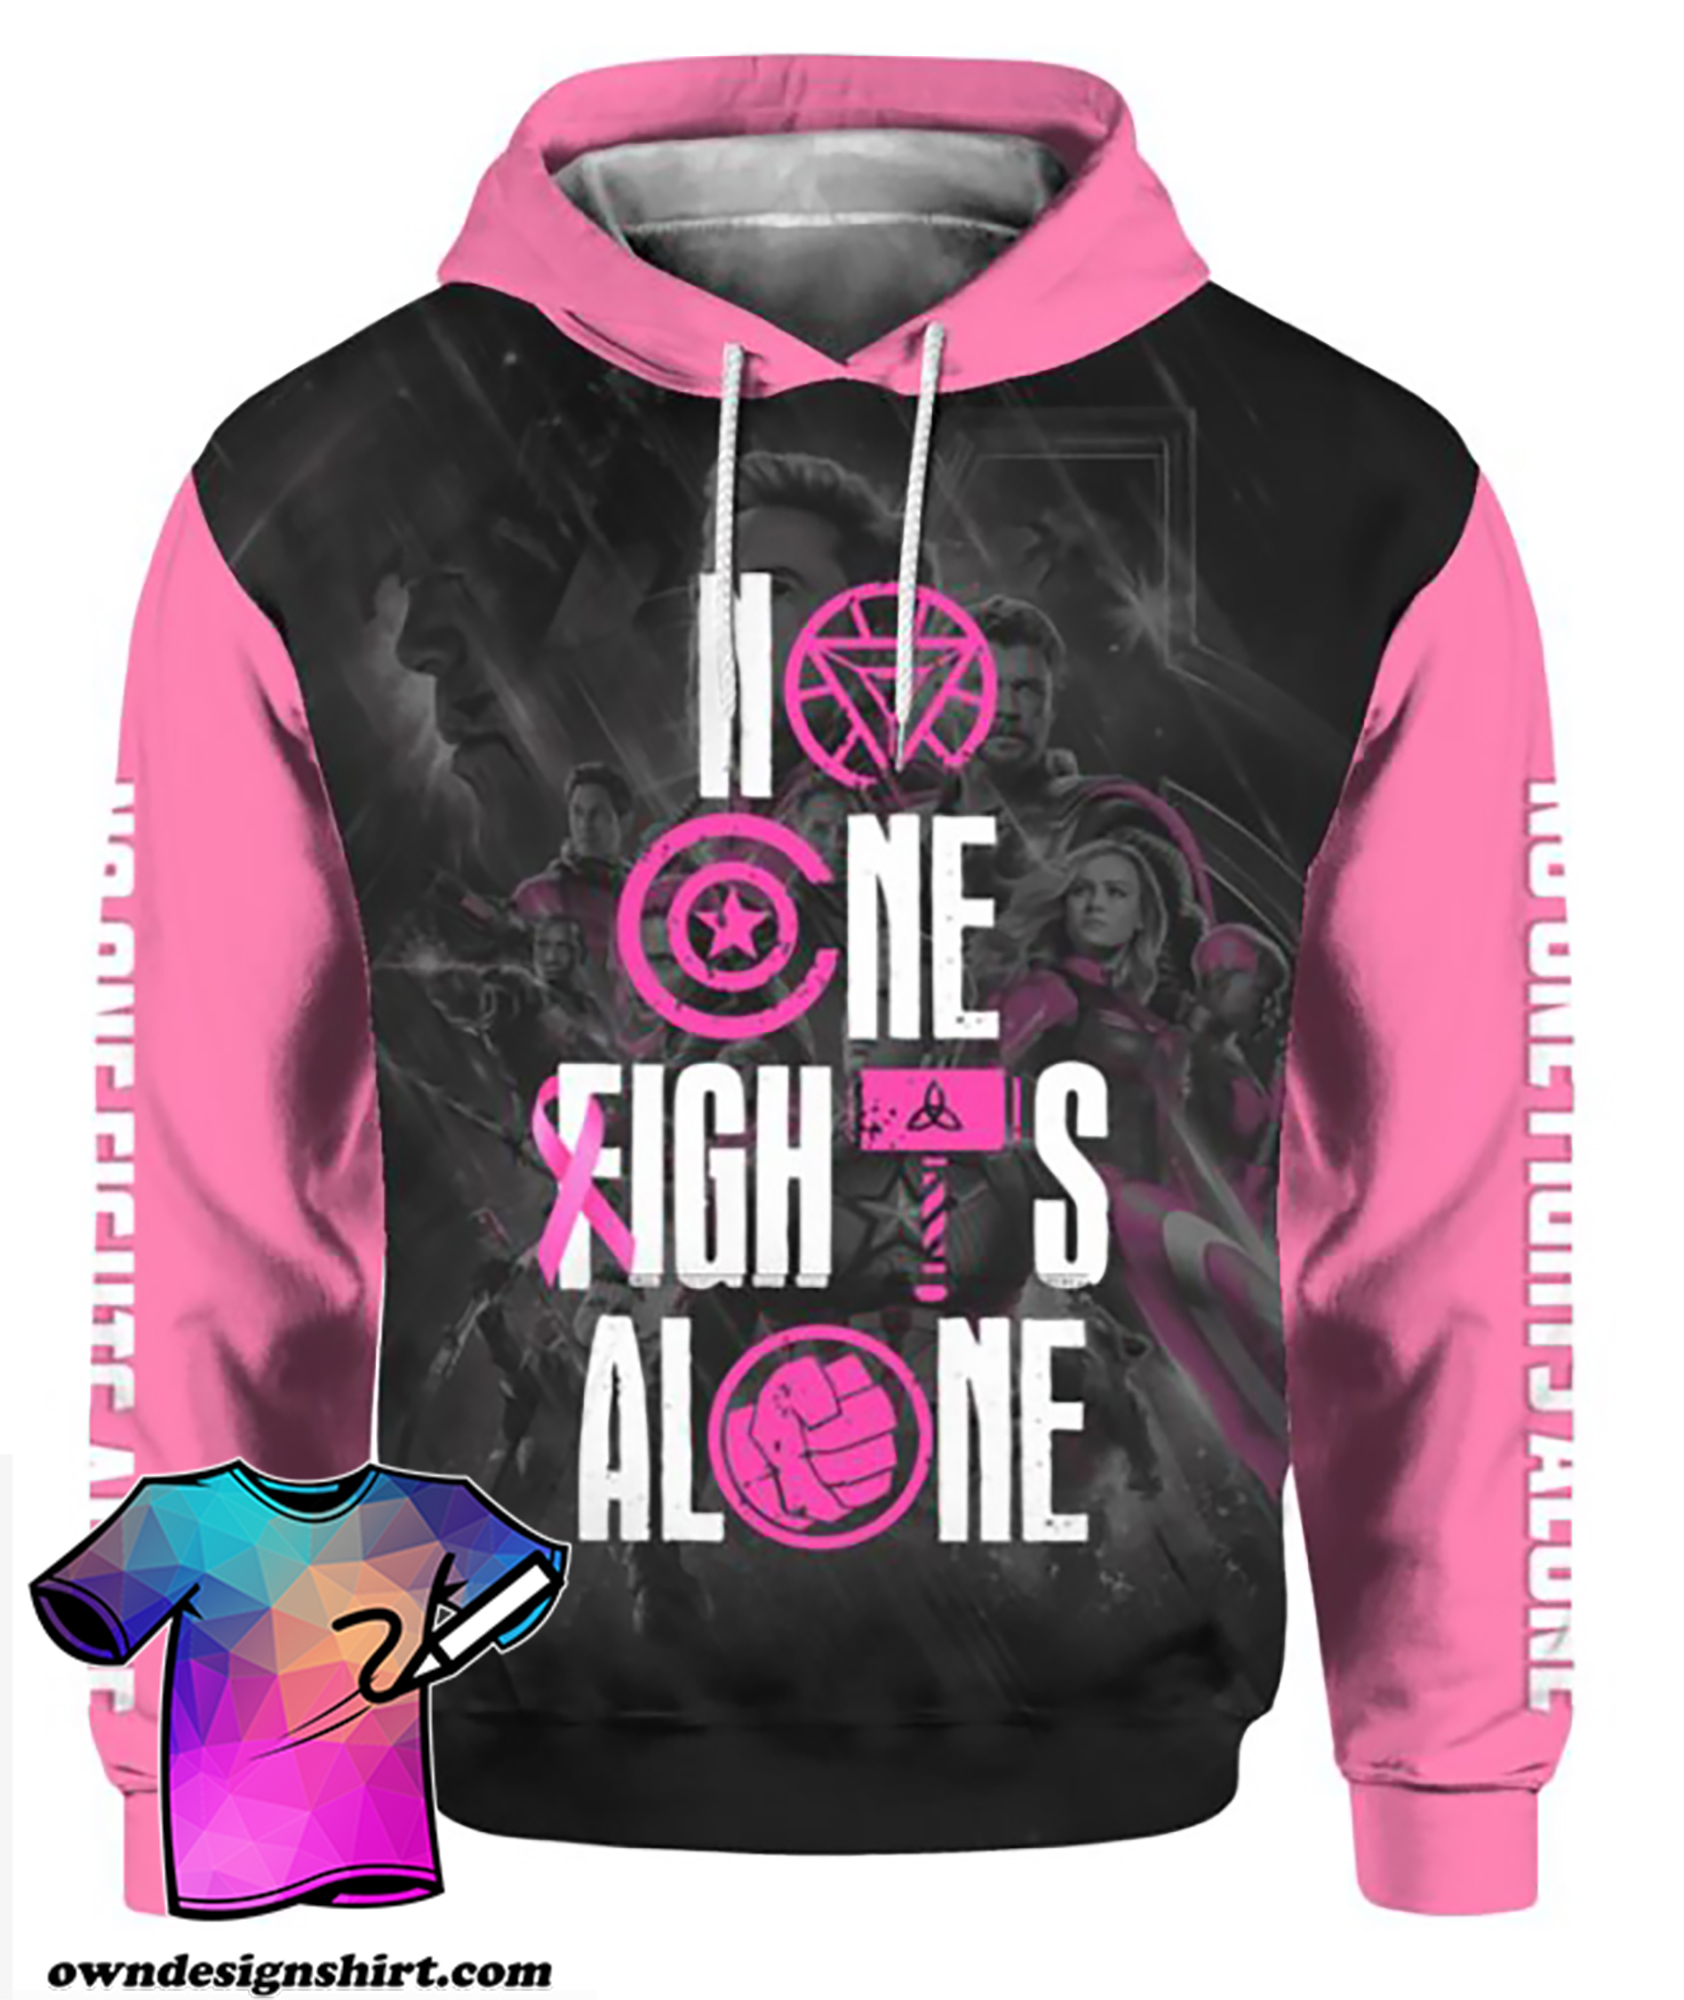 The avengers no one fights alone breast cancer awareness all over printed hoodie